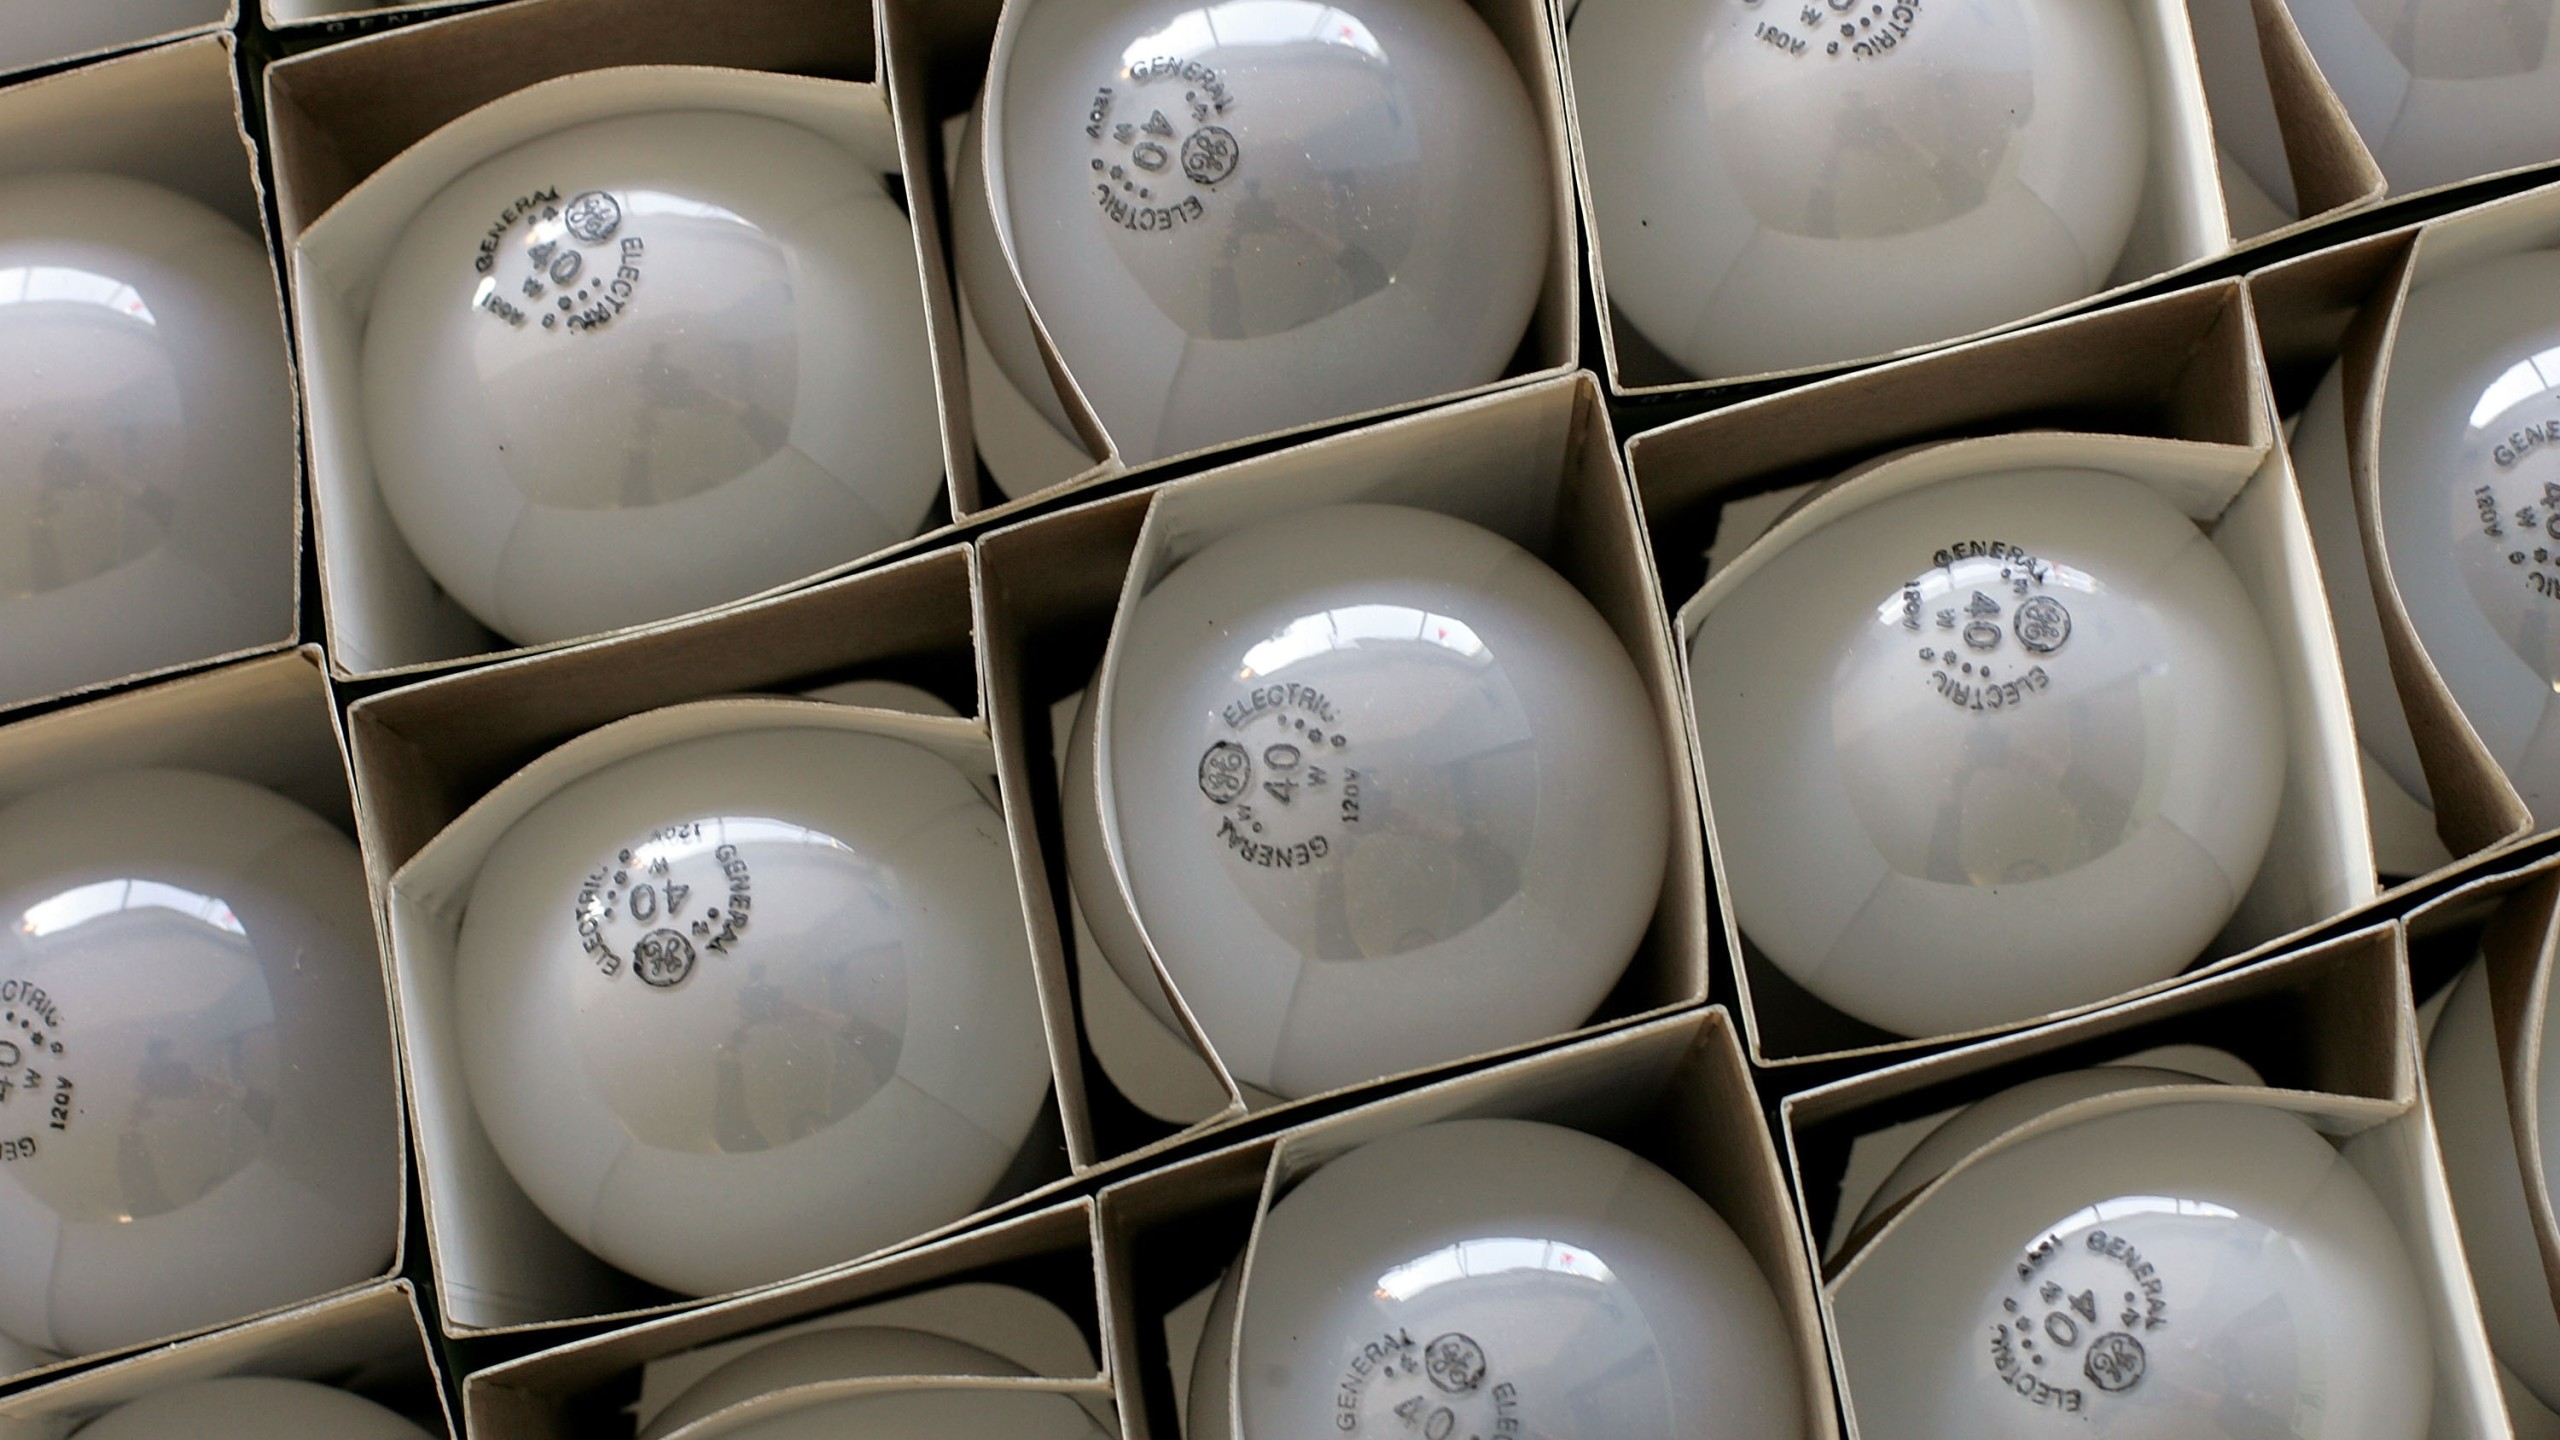 Boxes of incandescent light bulbs are seen at the City Lights Light Bulb Store January 31, 2007 in San Francisco, California. (Credit: Justin Sullivan/Getty Images)